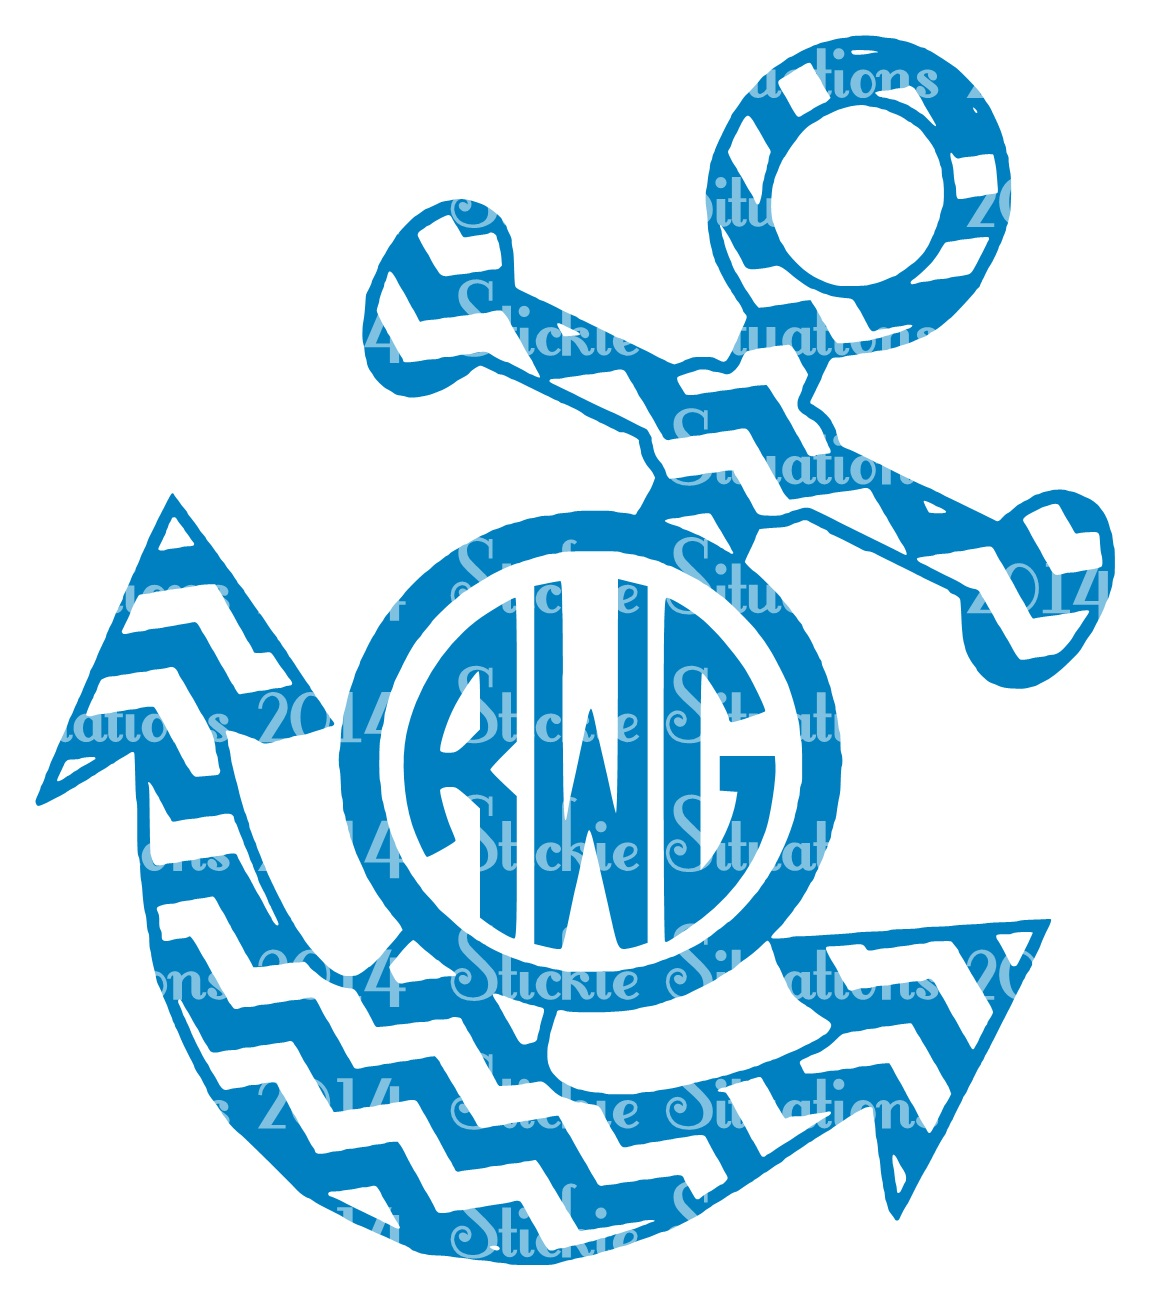 Anchor clipart monogram. Chevron decal stickie situations